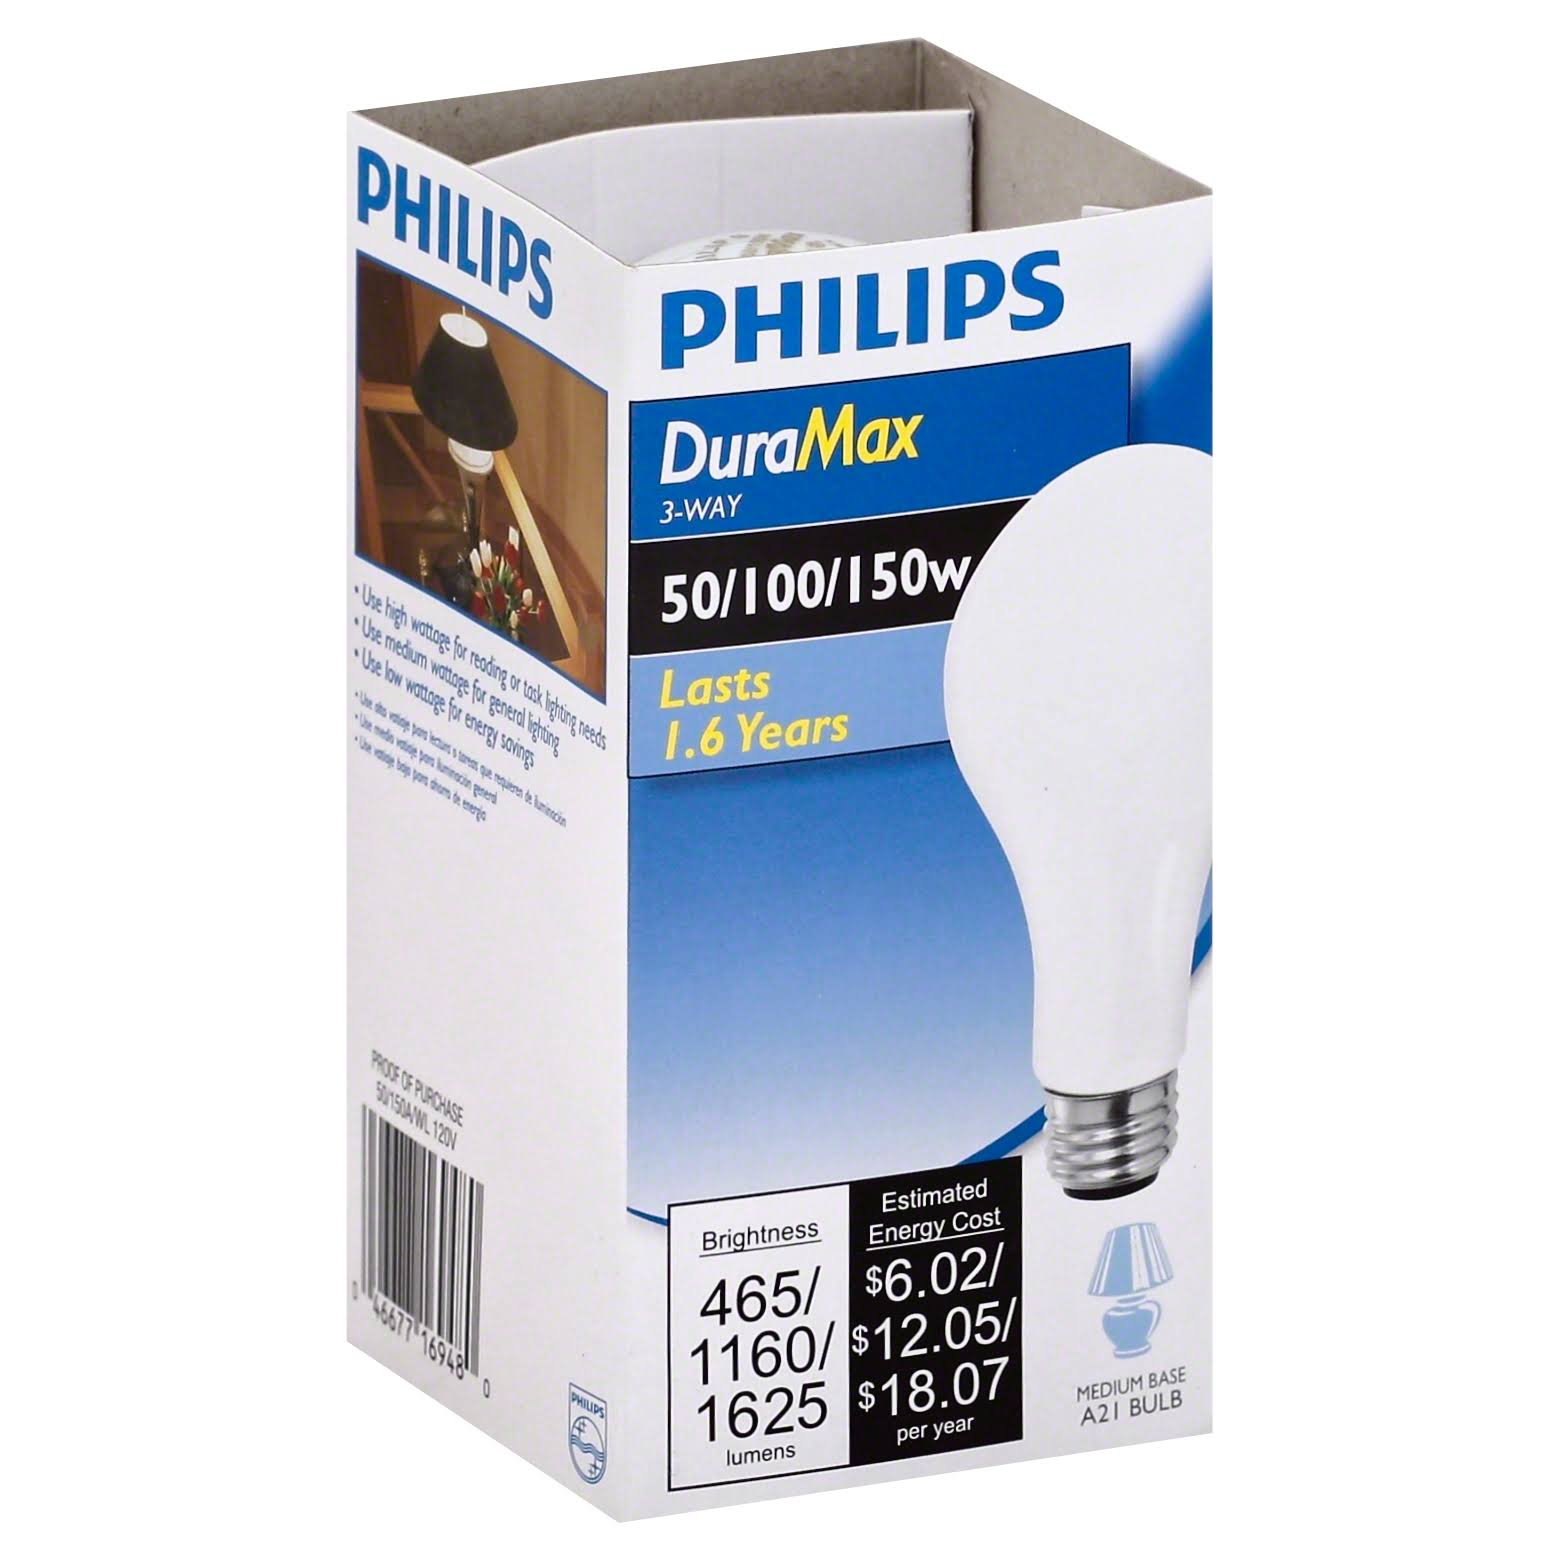 Philips Bulbs Duramax A21 Incandescent Light Bulb - Soft White, 3 Way